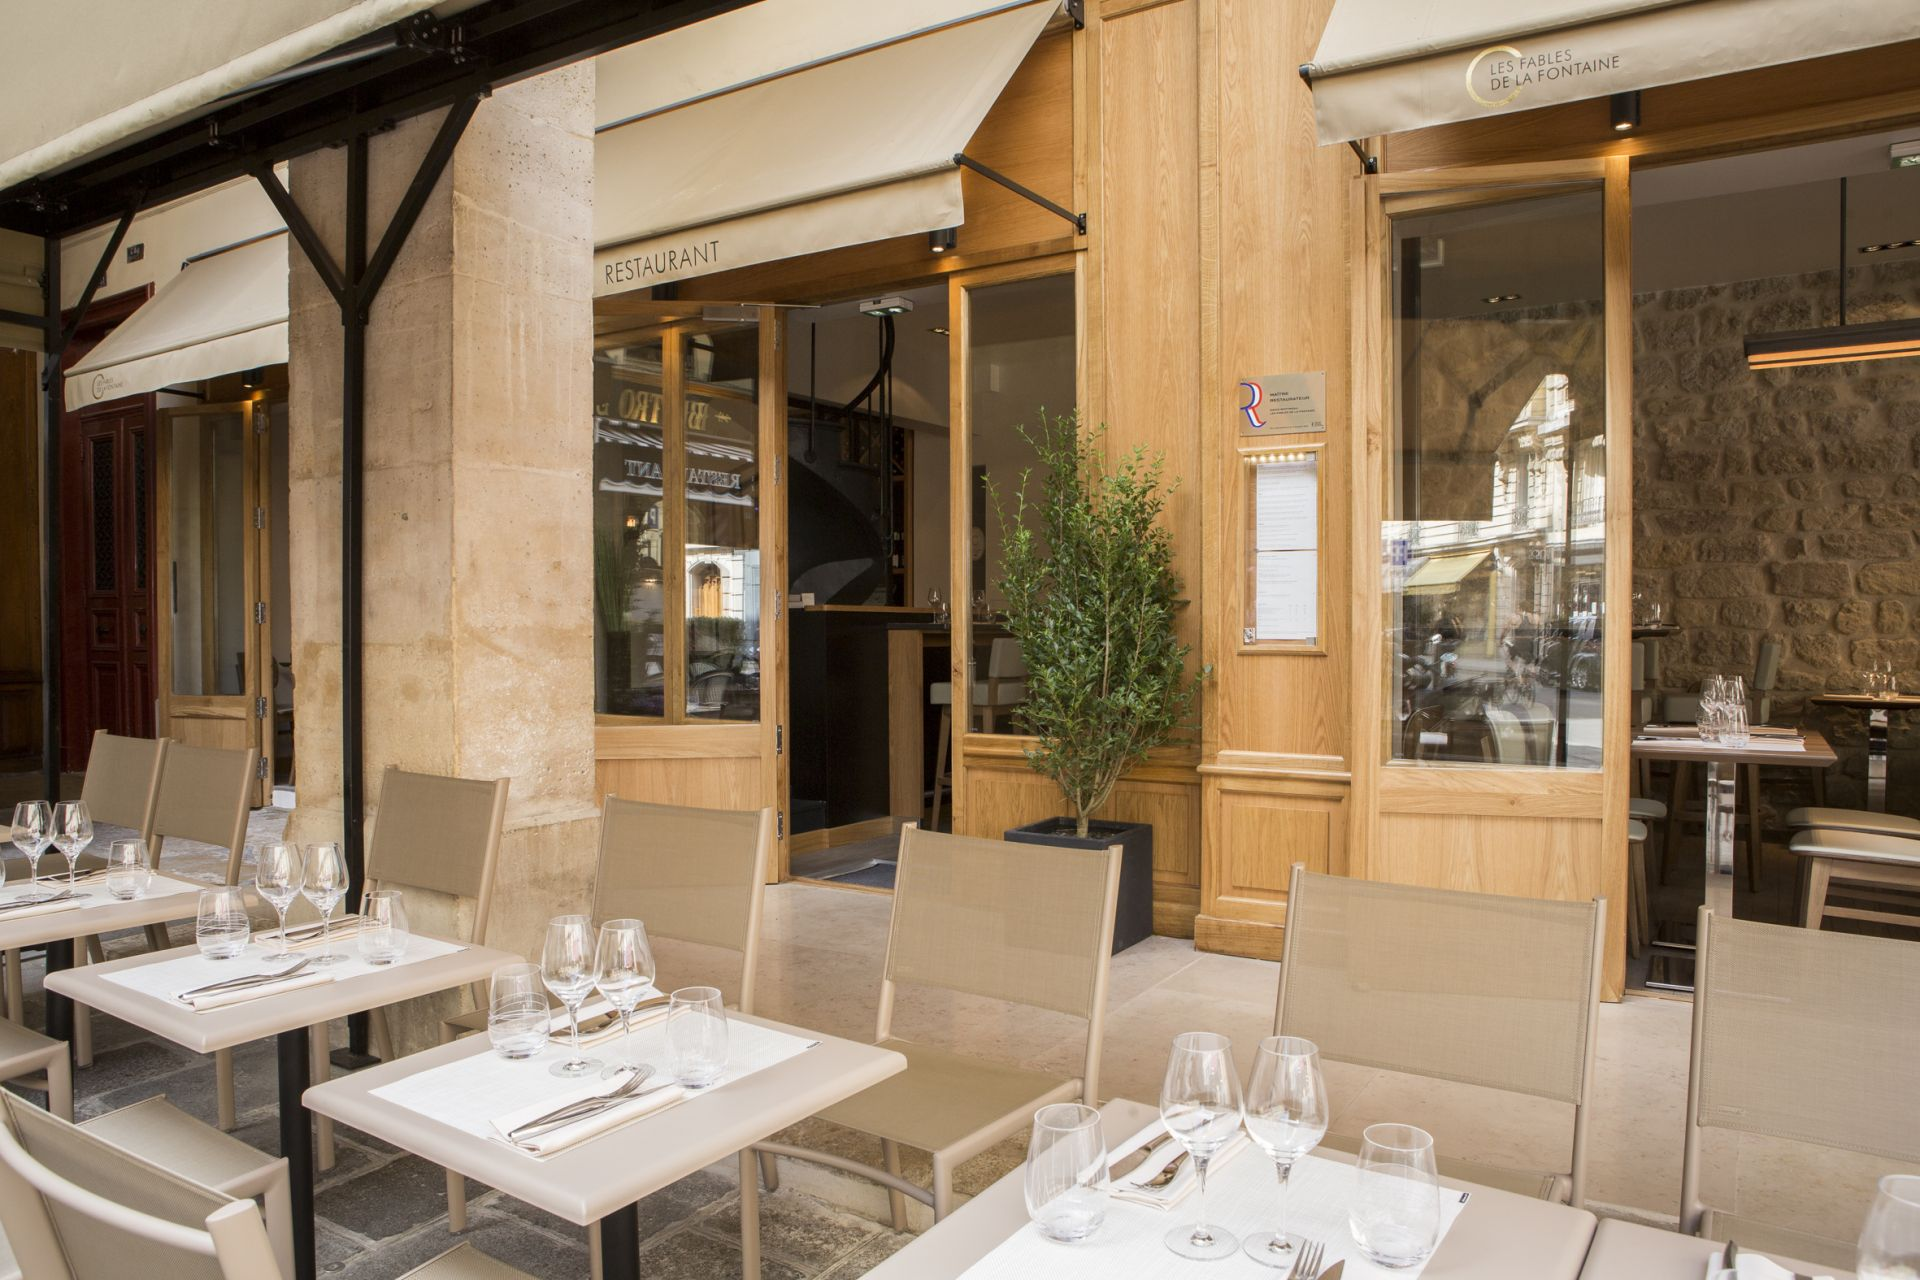 La place de la femme dans le luxe l 39 opinion de julia for Apprentissage cuisine paris